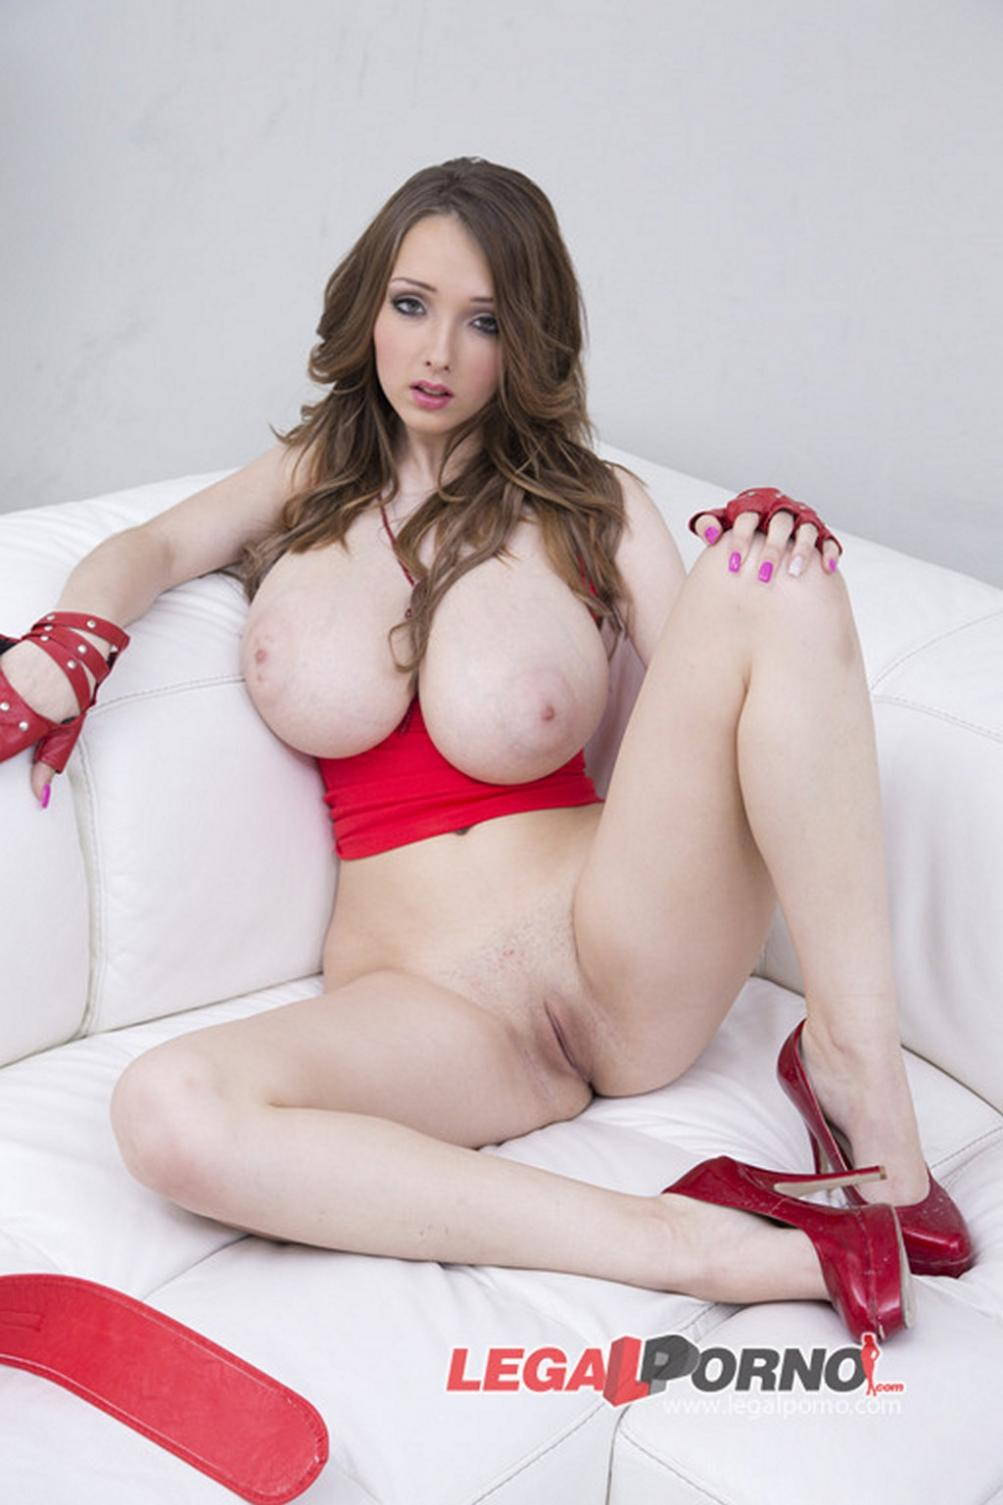 Sexy pictures of buffy the body porn